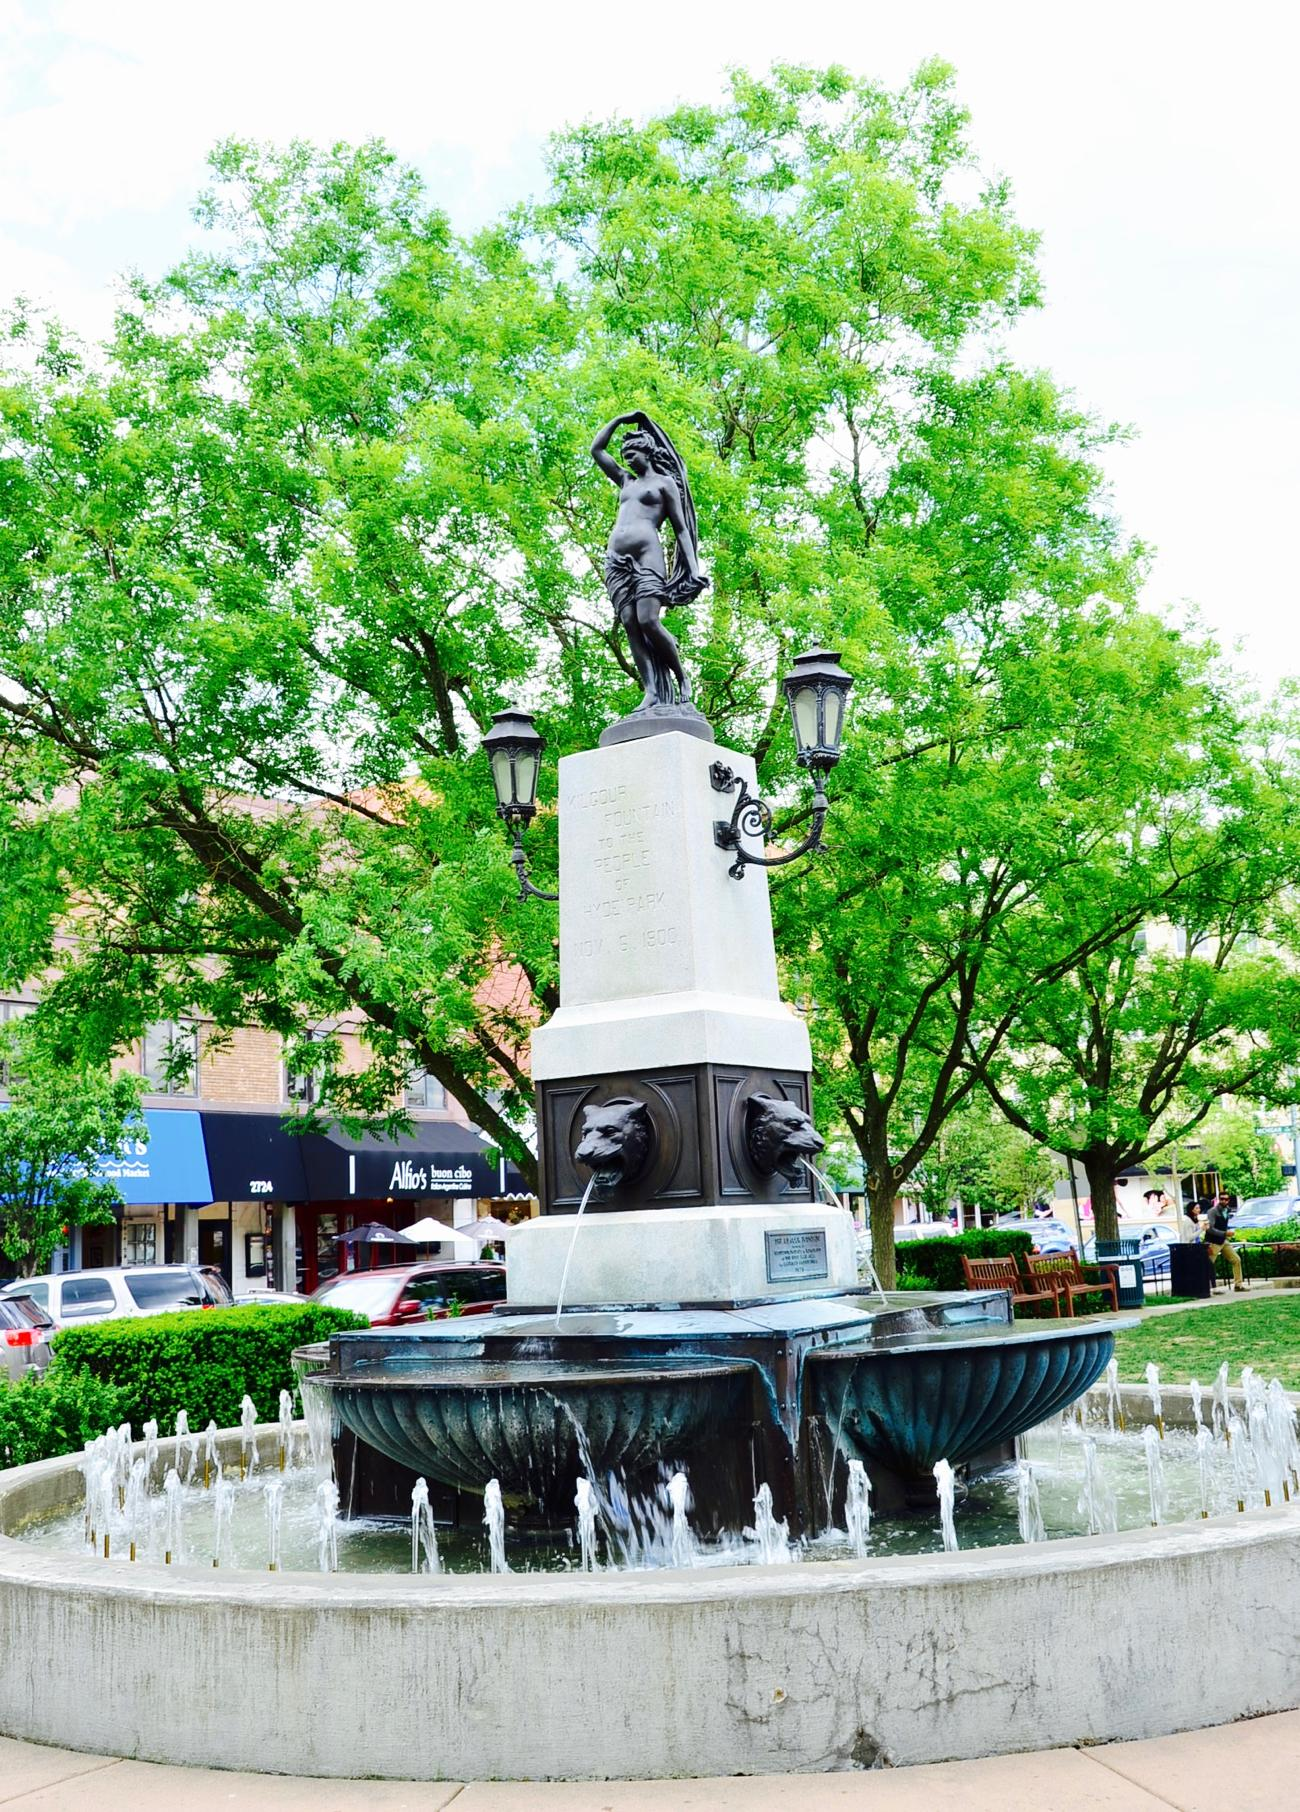 PARK: Hyde Park Square / LOCATION: You know where… / FUN FACT: Charles Kilgour, a local real-estate investor, donated the fountain in 1900. The fountain was designed by Joseph Cronin, featuring a female with four lion-head water spouts. / IMAGE: Leah Zipperstein, Cincinnati Refined // PUBLISHED: 5.8.17